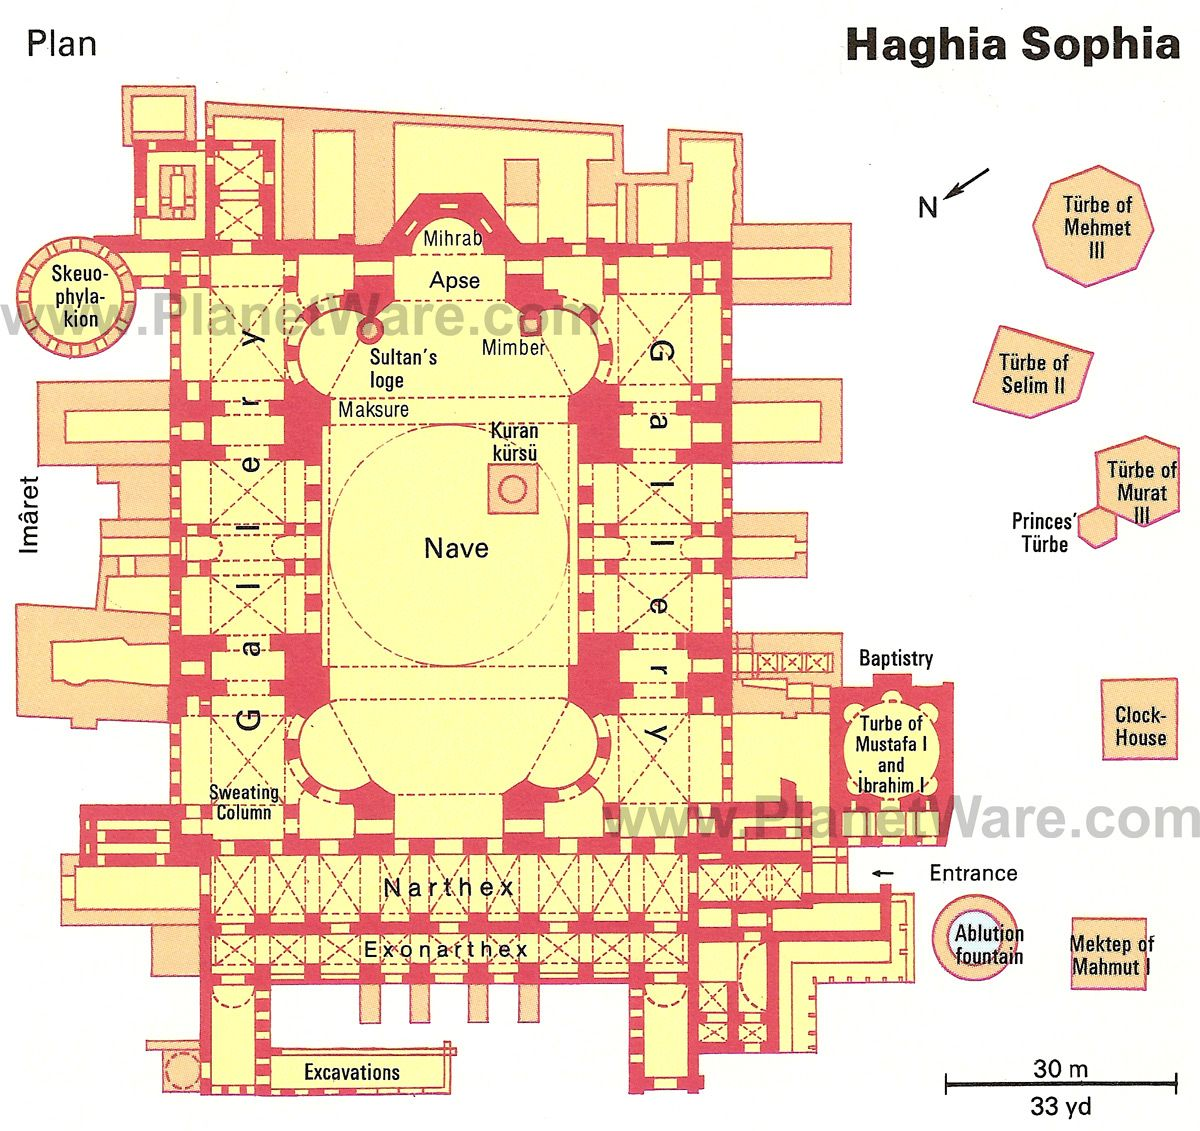 Exploring Aya Sofya Hagia Sophia A Visitor S Guide Planetware Hagia Sophia City Layout Historical Architecture